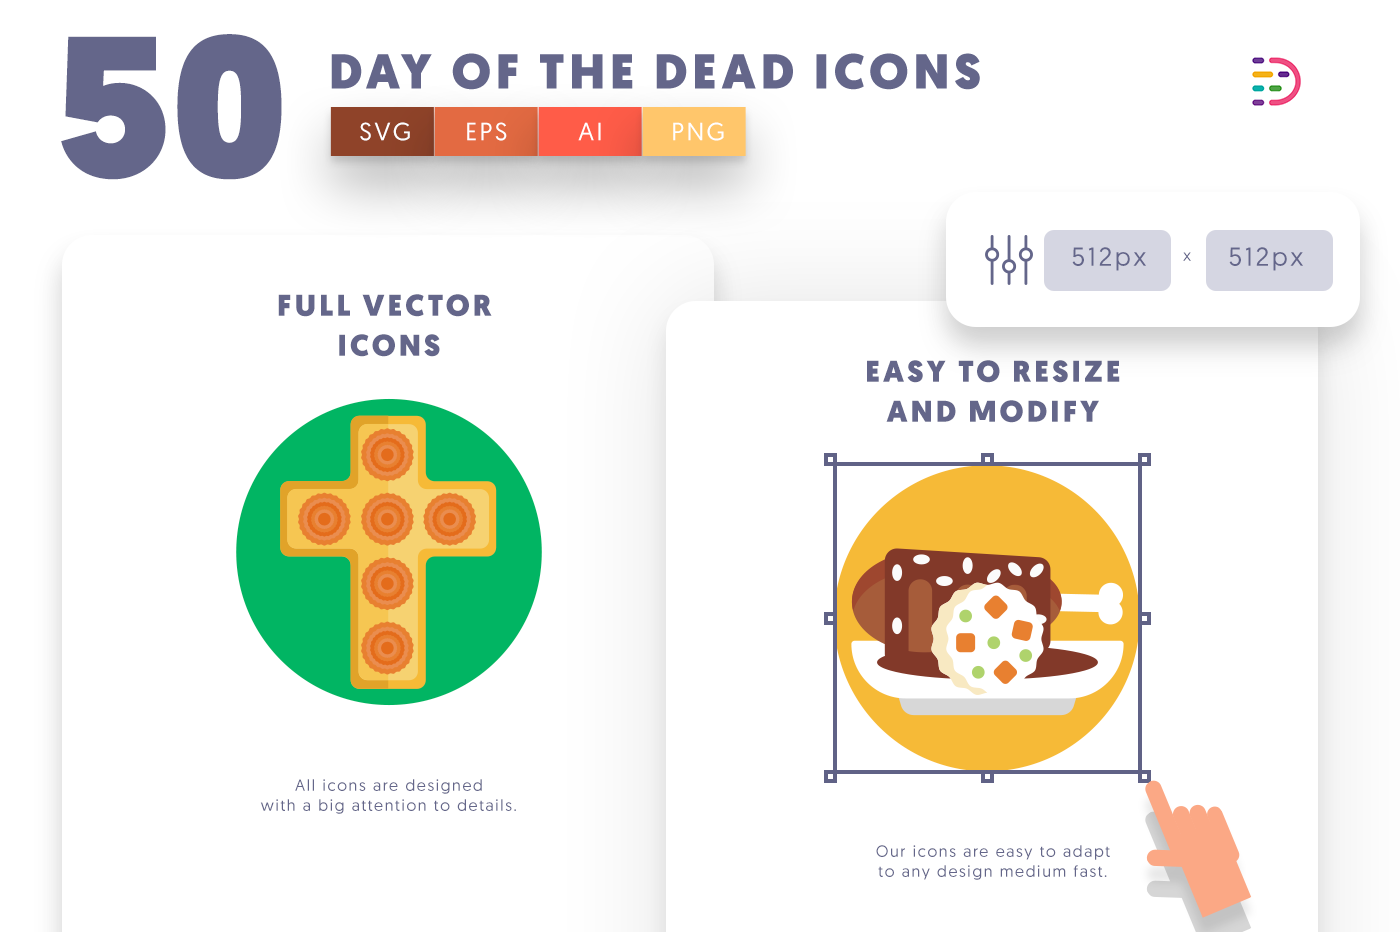 Full vector 50DayoftheDead Icons